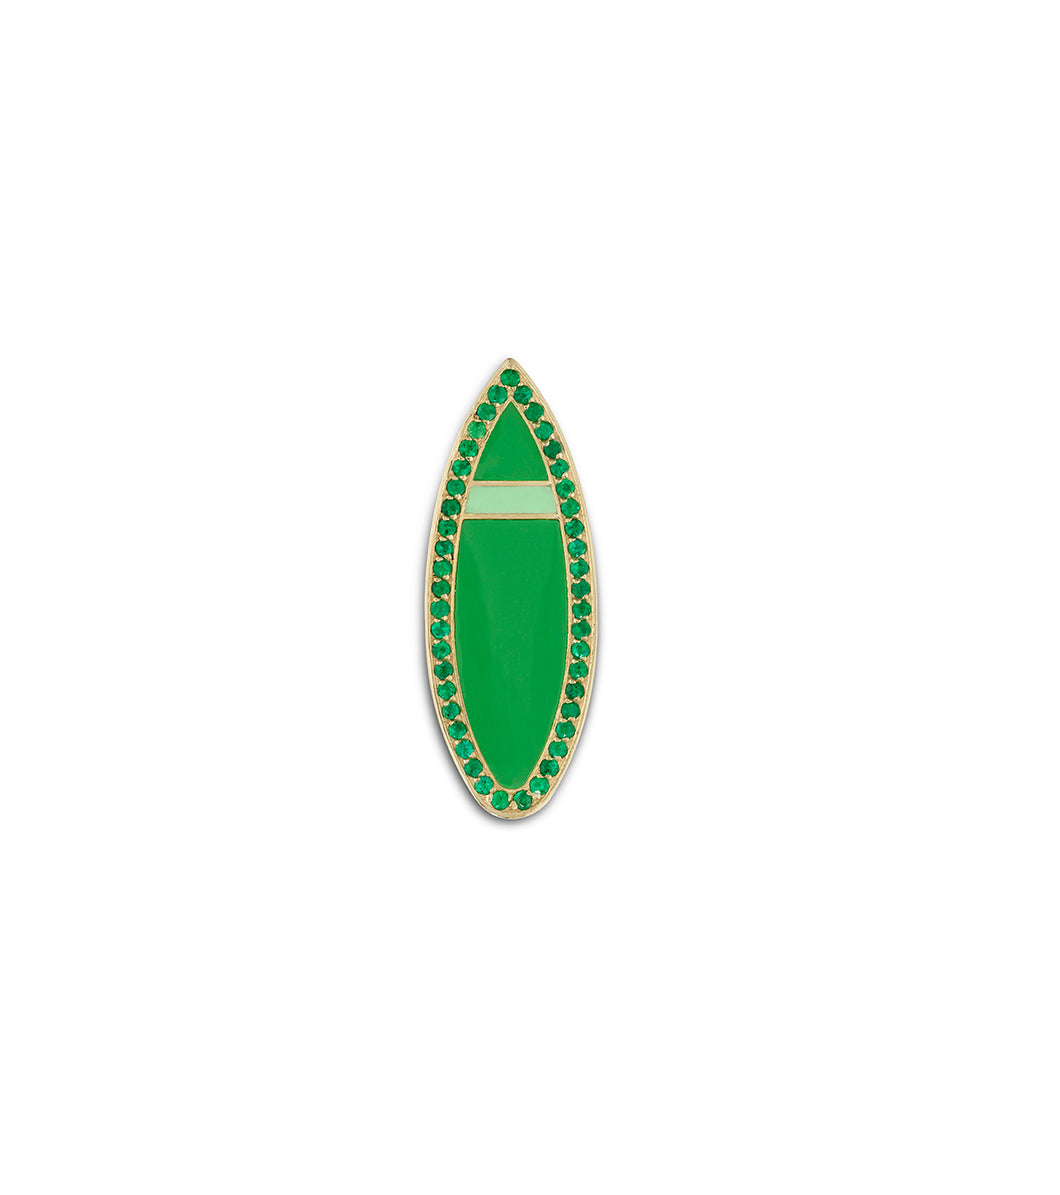 Emerald Malibu Short Board Necklace